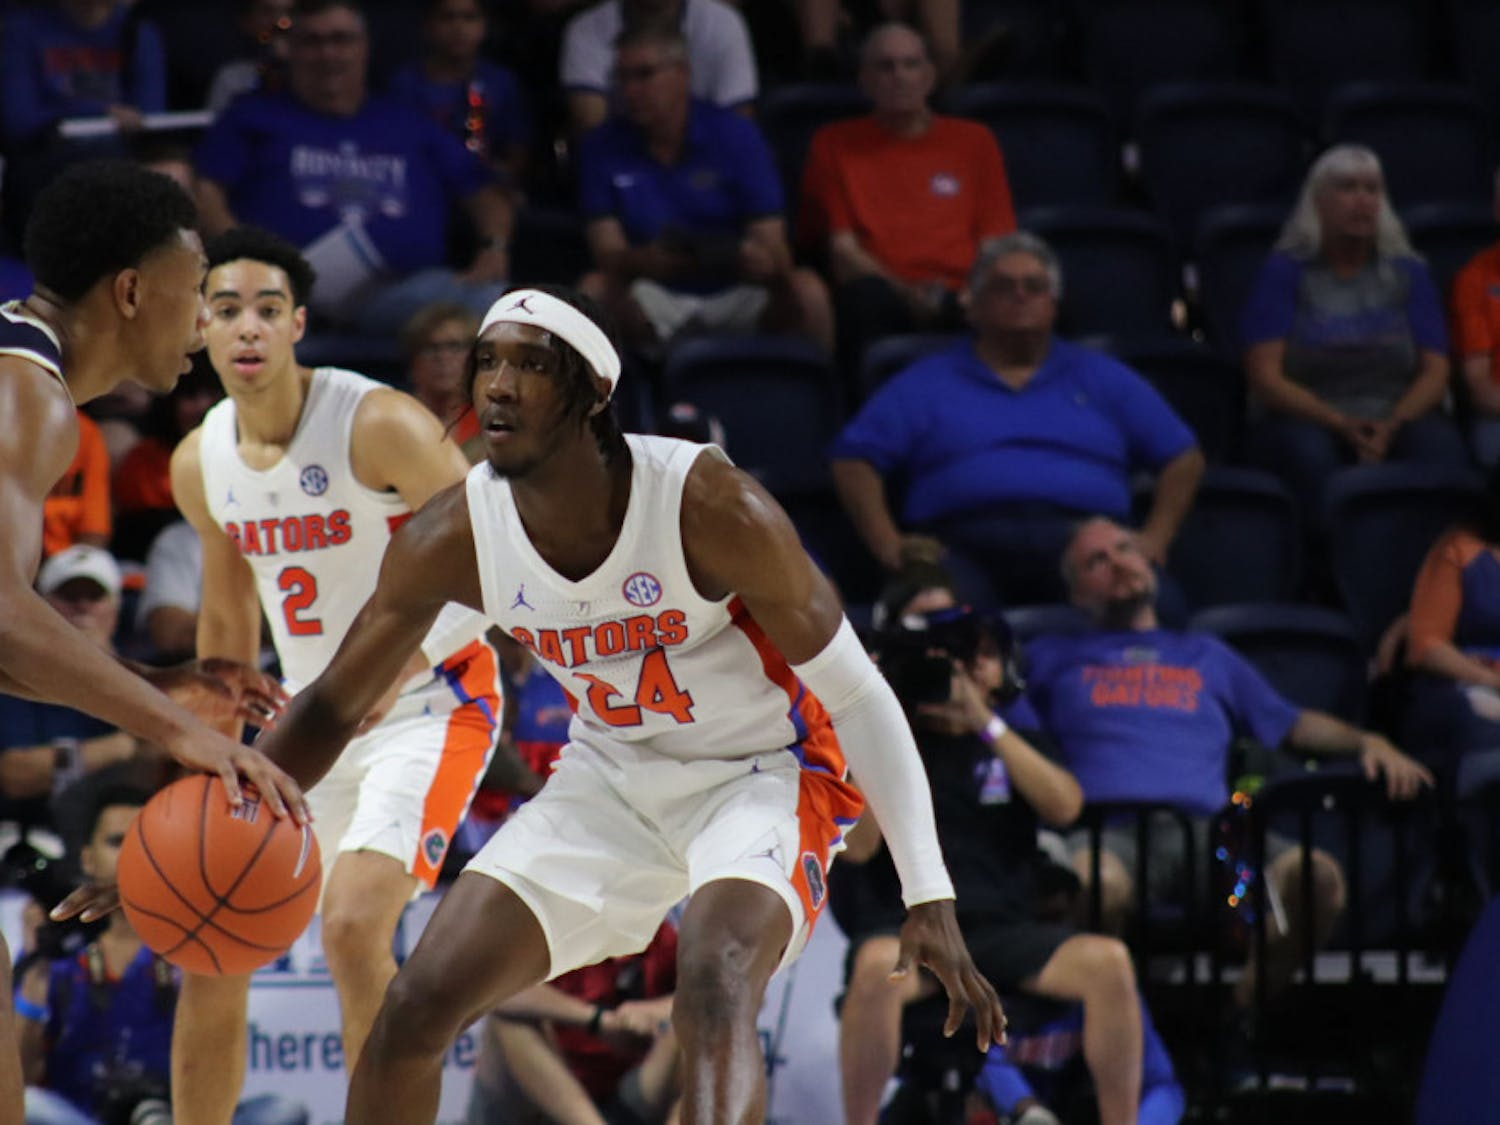 Florida guard Deaundrae Ballard leads the Gators with 10.9 points per game.